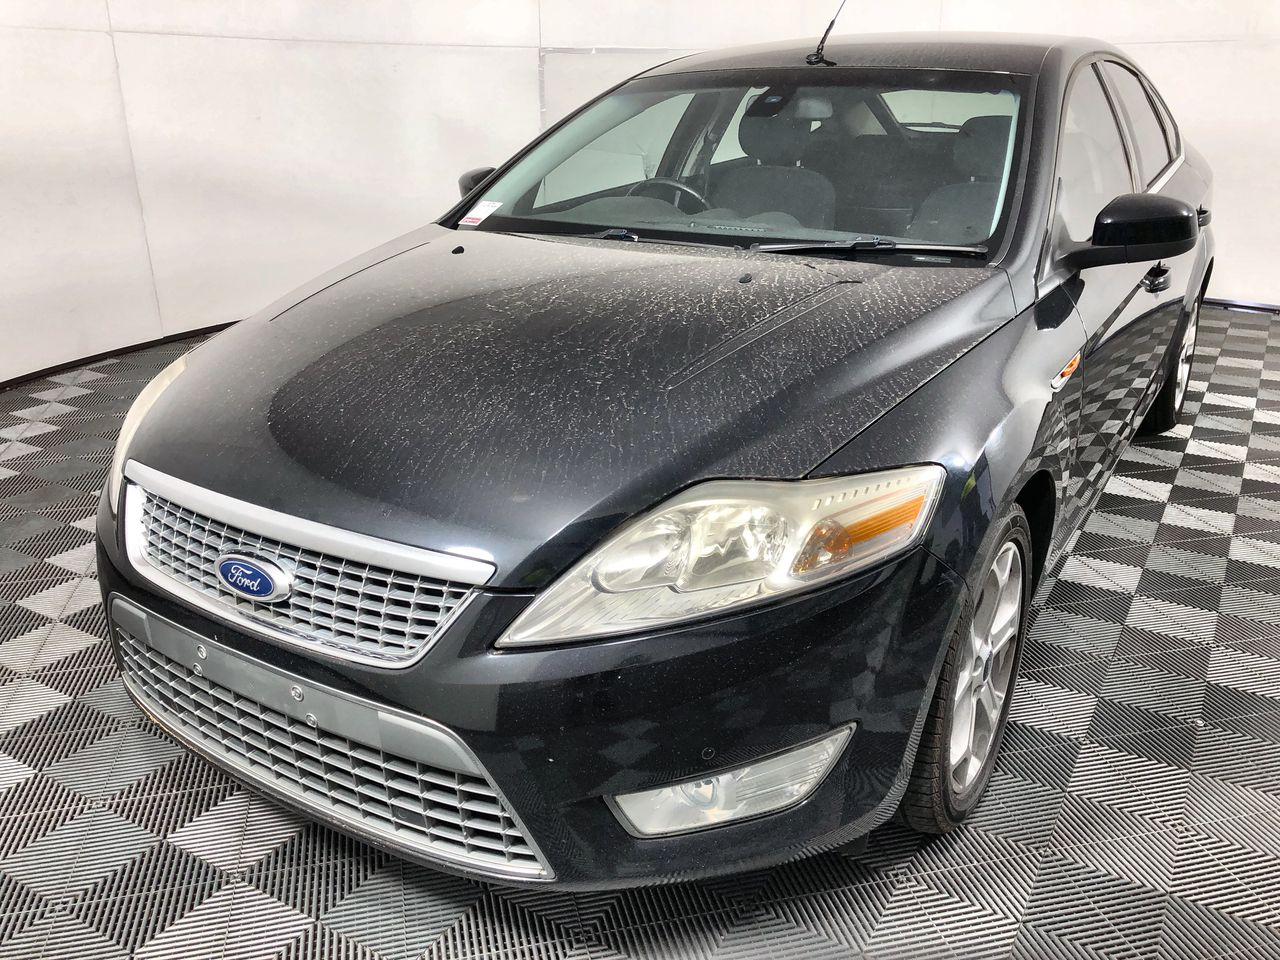 2010 Ford Mondeo Zetec MB Turbo Diesel Automatic Hatchback